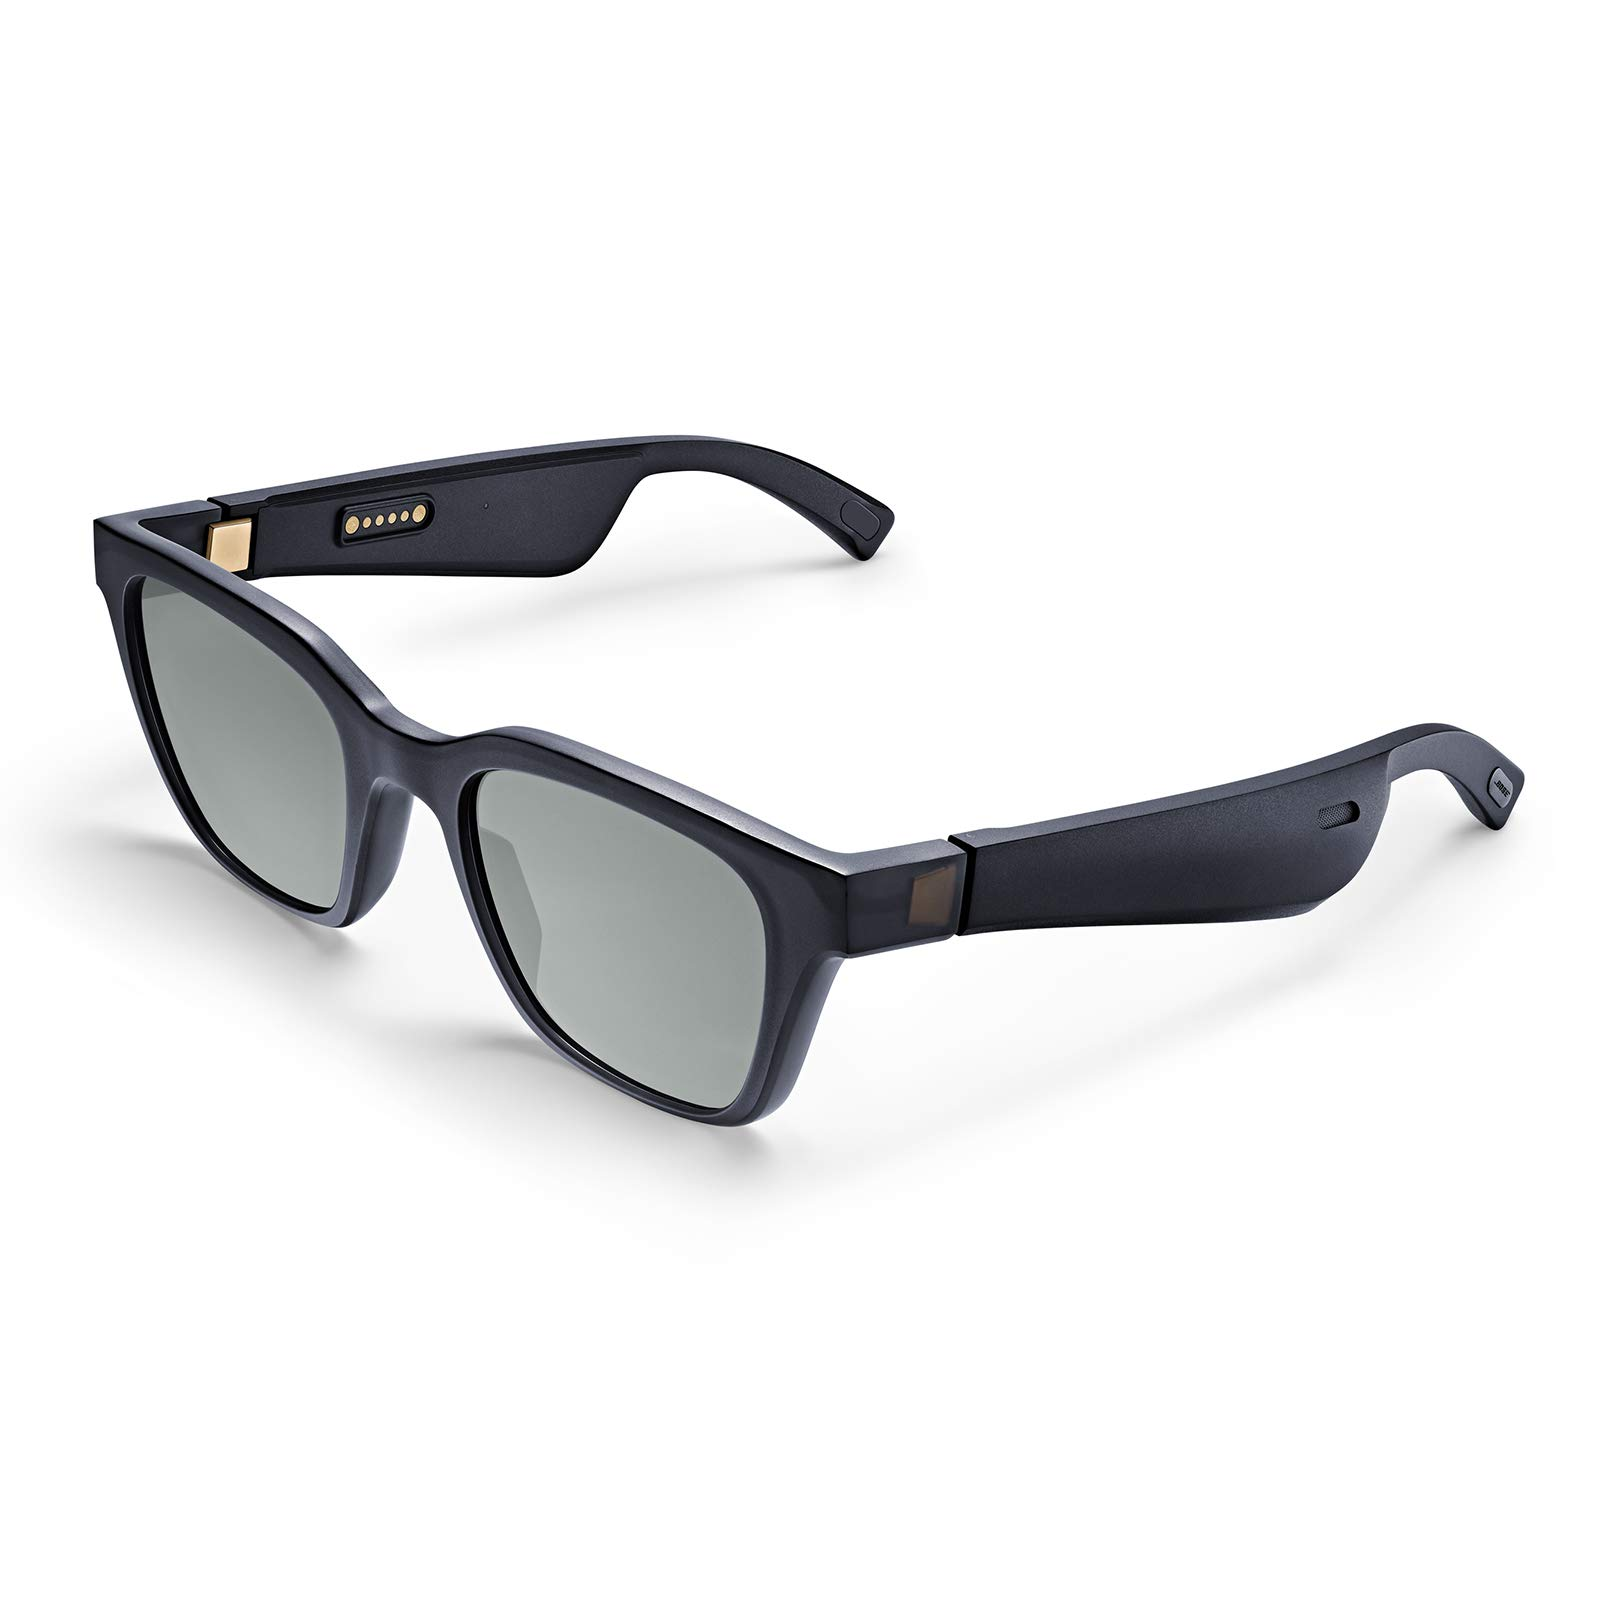 Bose Frames Audio Sunglasses, Alto, Black - with Bluetooth Connectivity by Bose (Image #3)